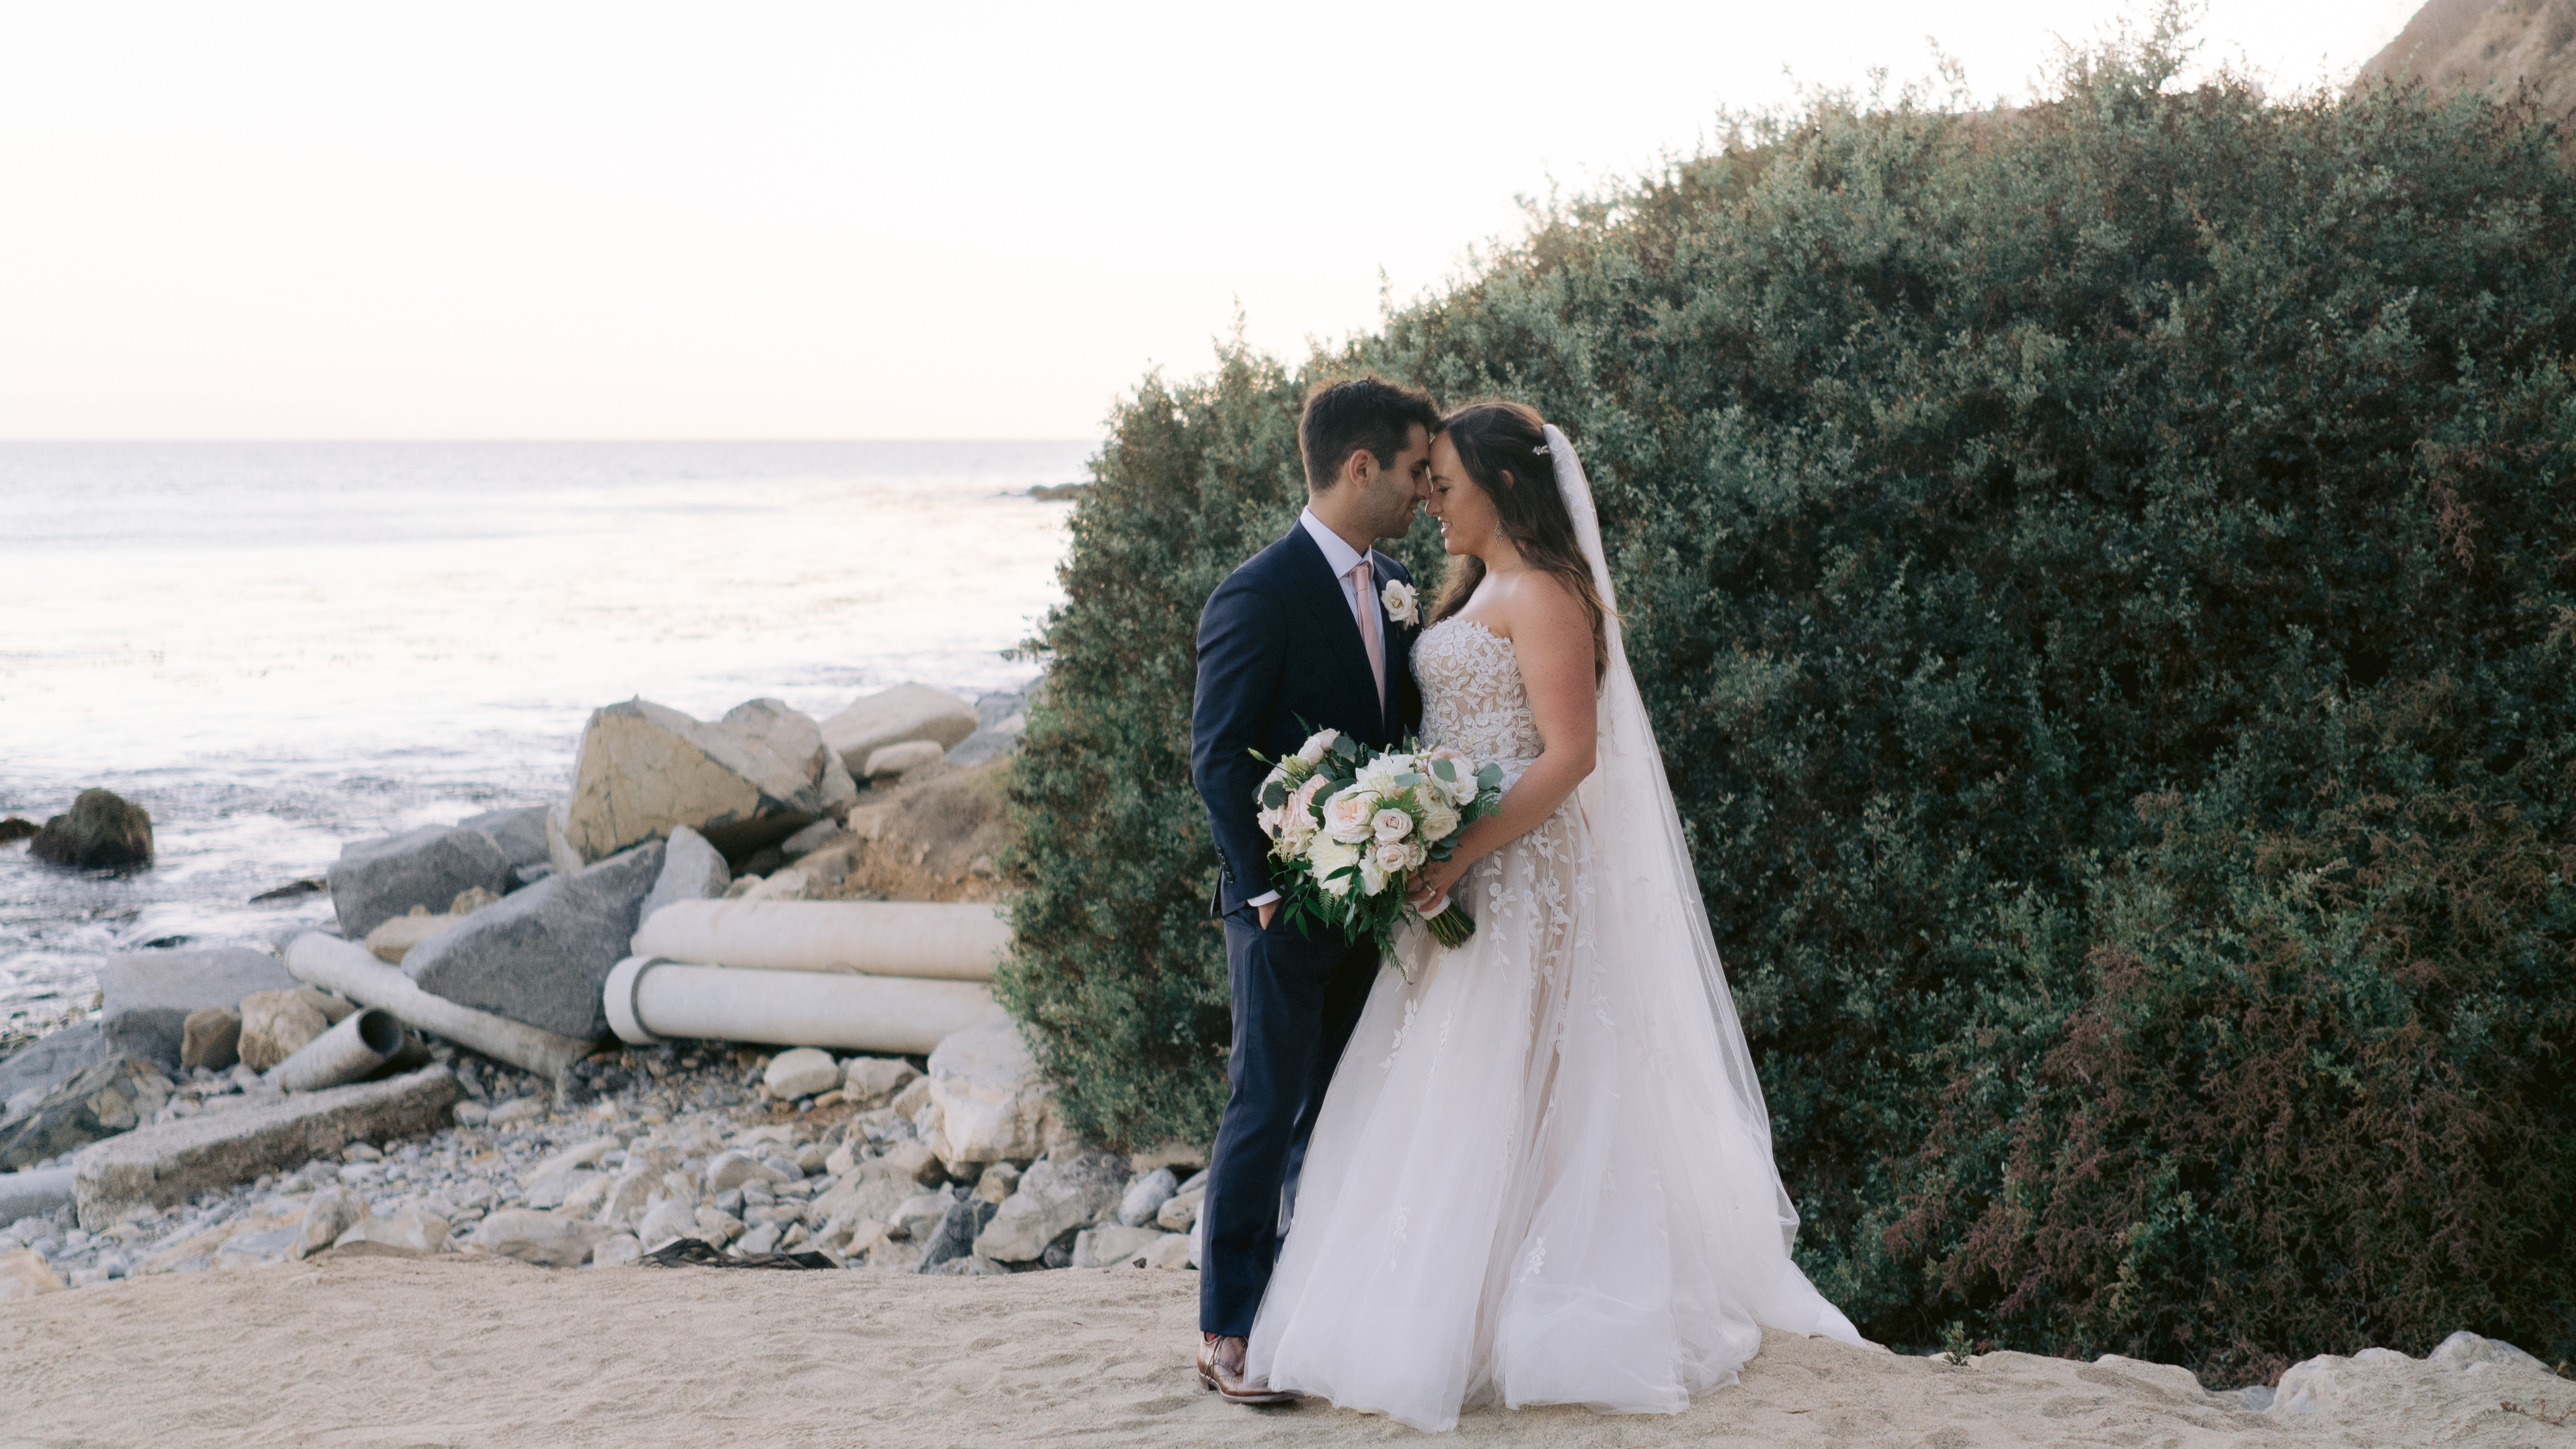 Shelby + Nick | Rancho Palos Verdes, California | Terranea Resort